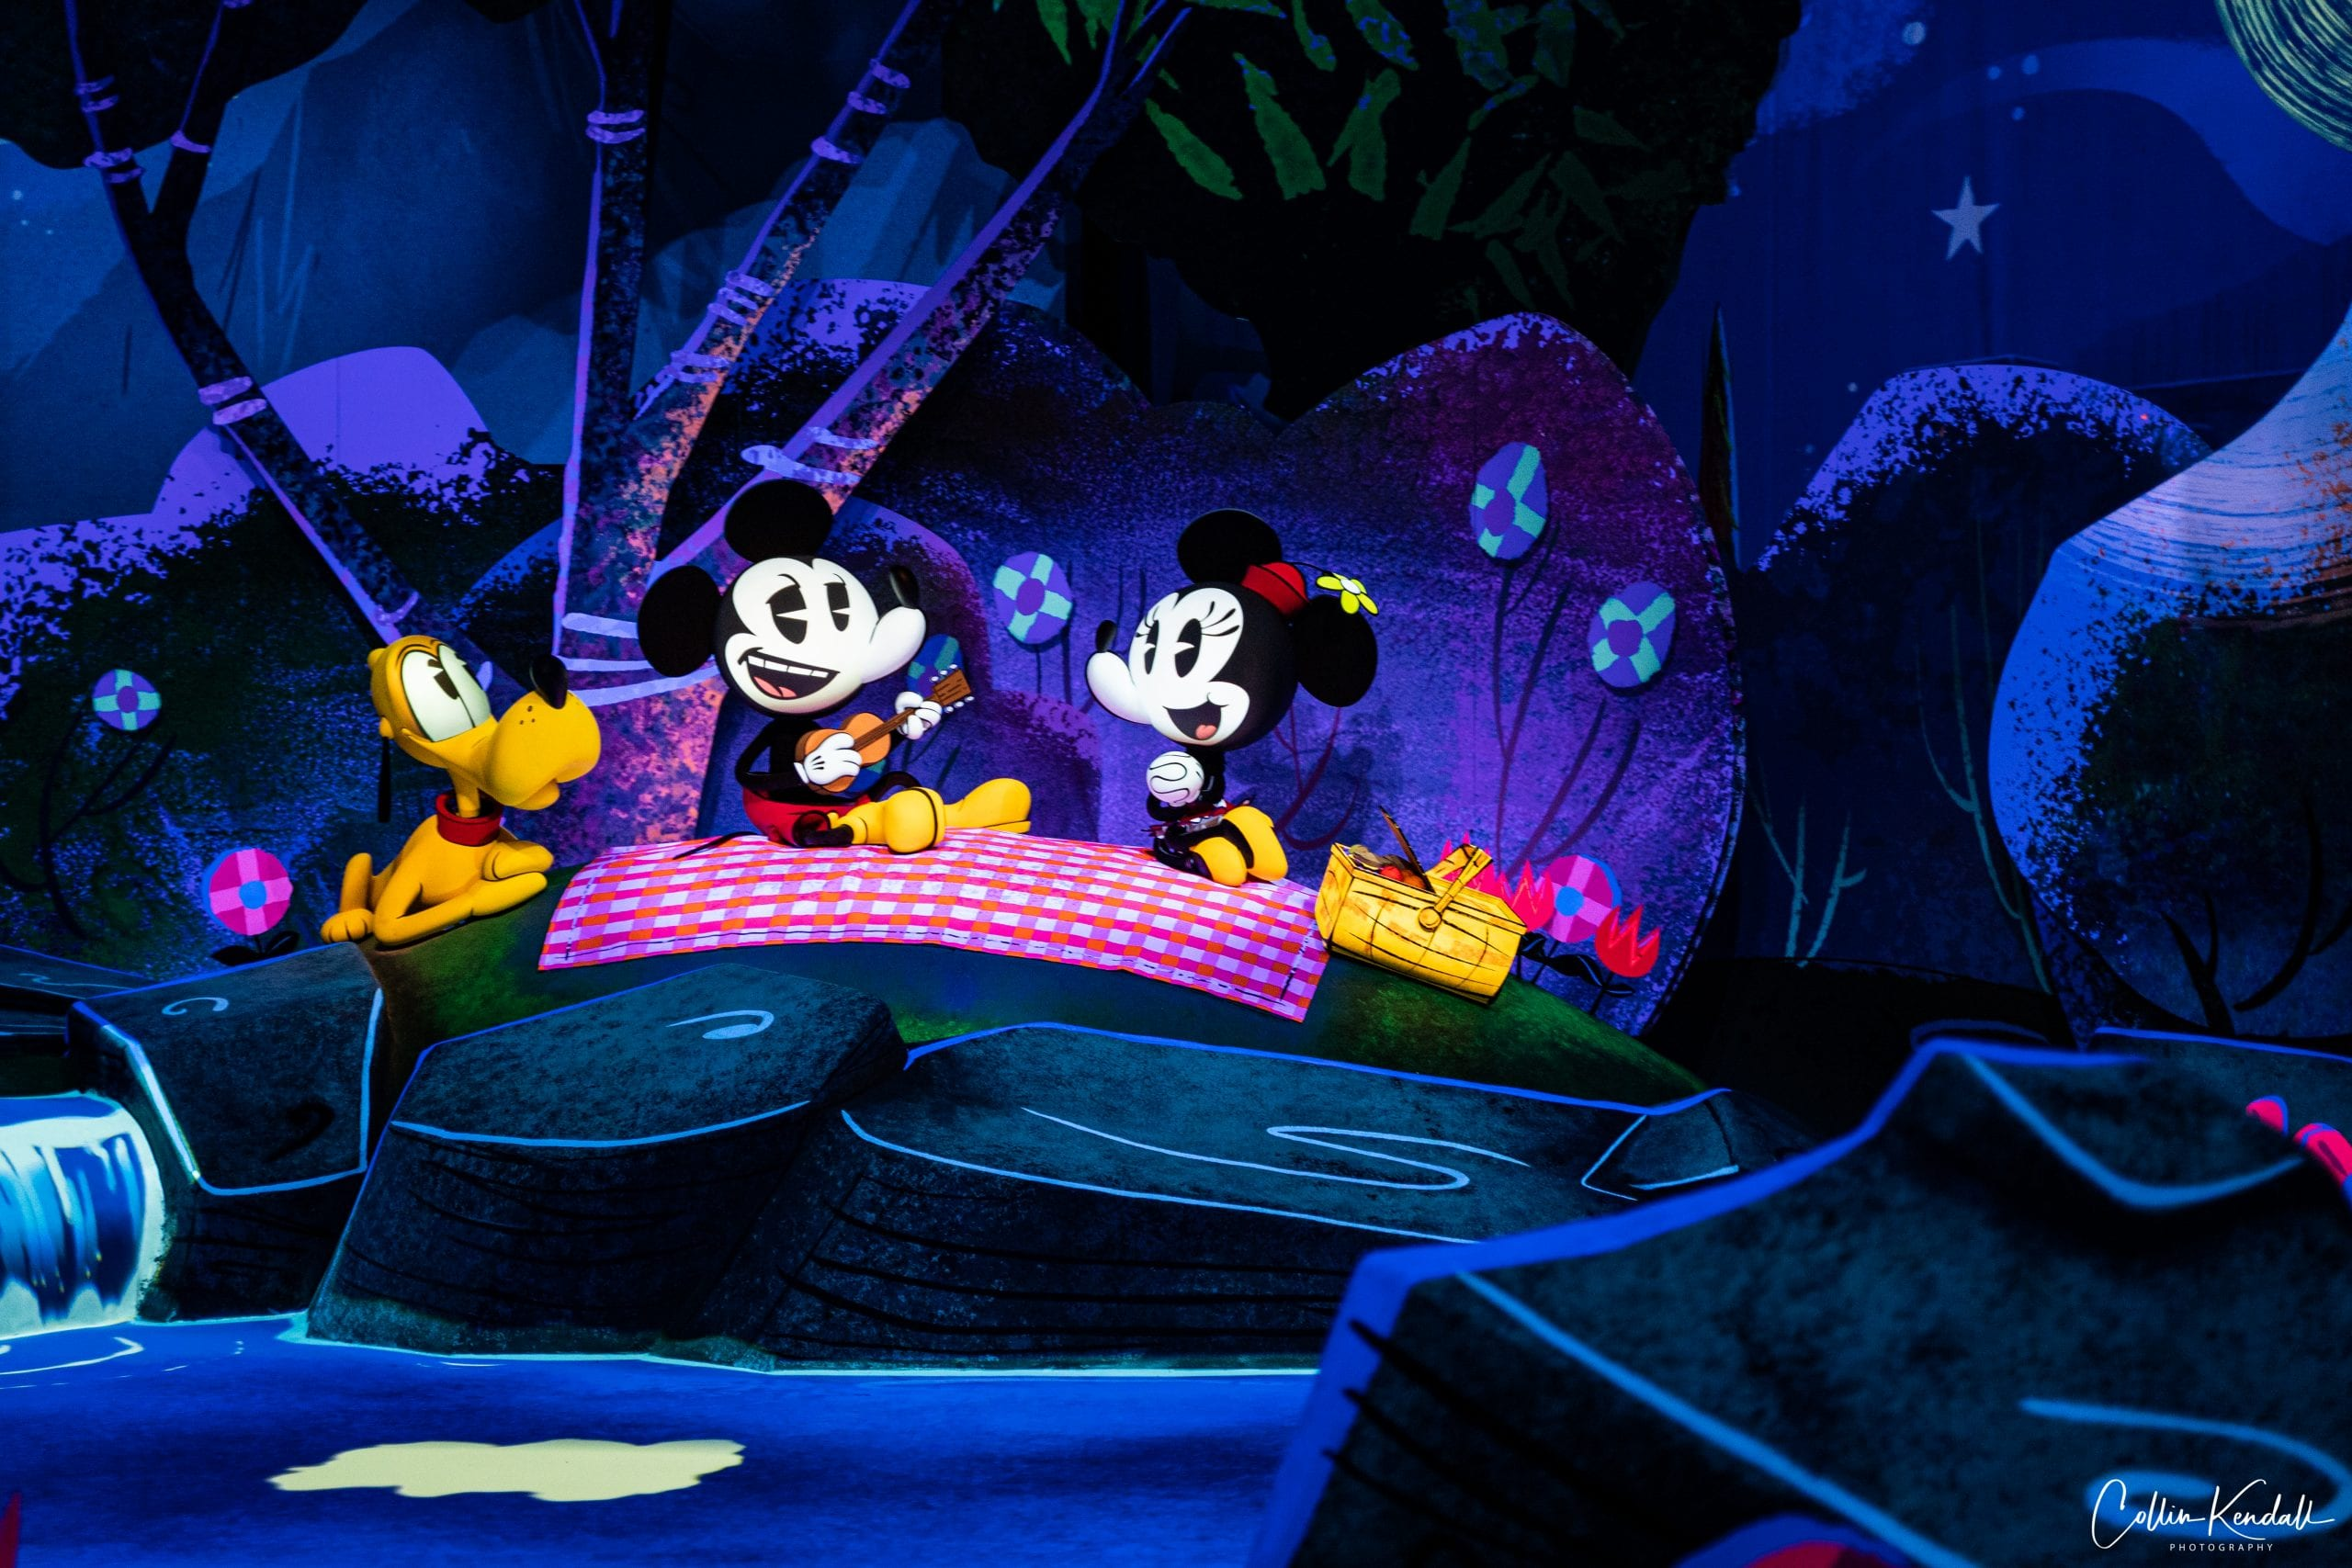 Mickey and Minnie Runaway Railway during COVID